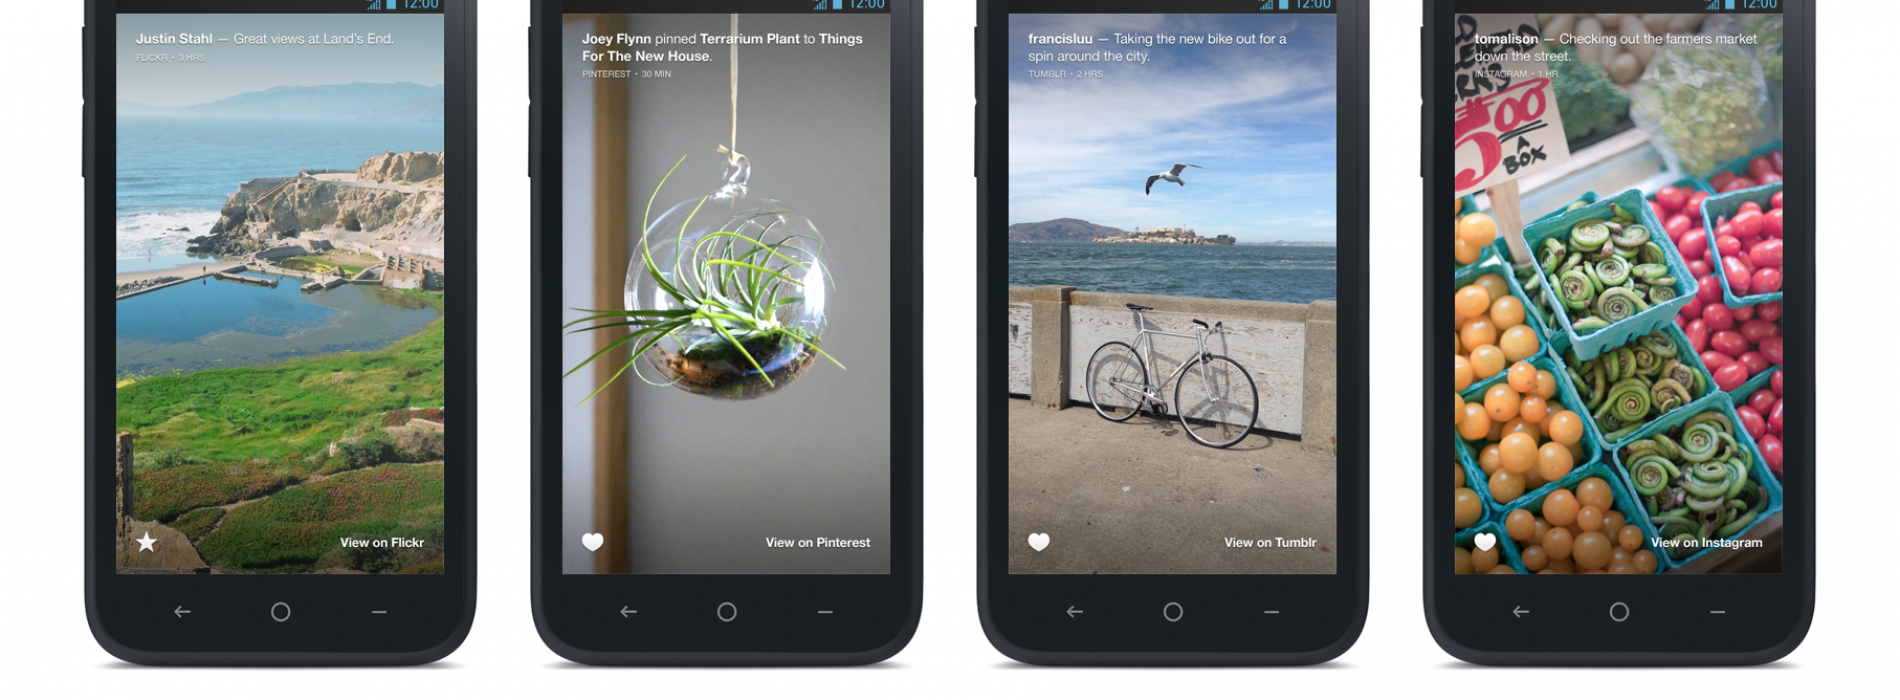 Facebook Home brings Instagram, Flickr, Tumblr, and Pinterest integration to all users